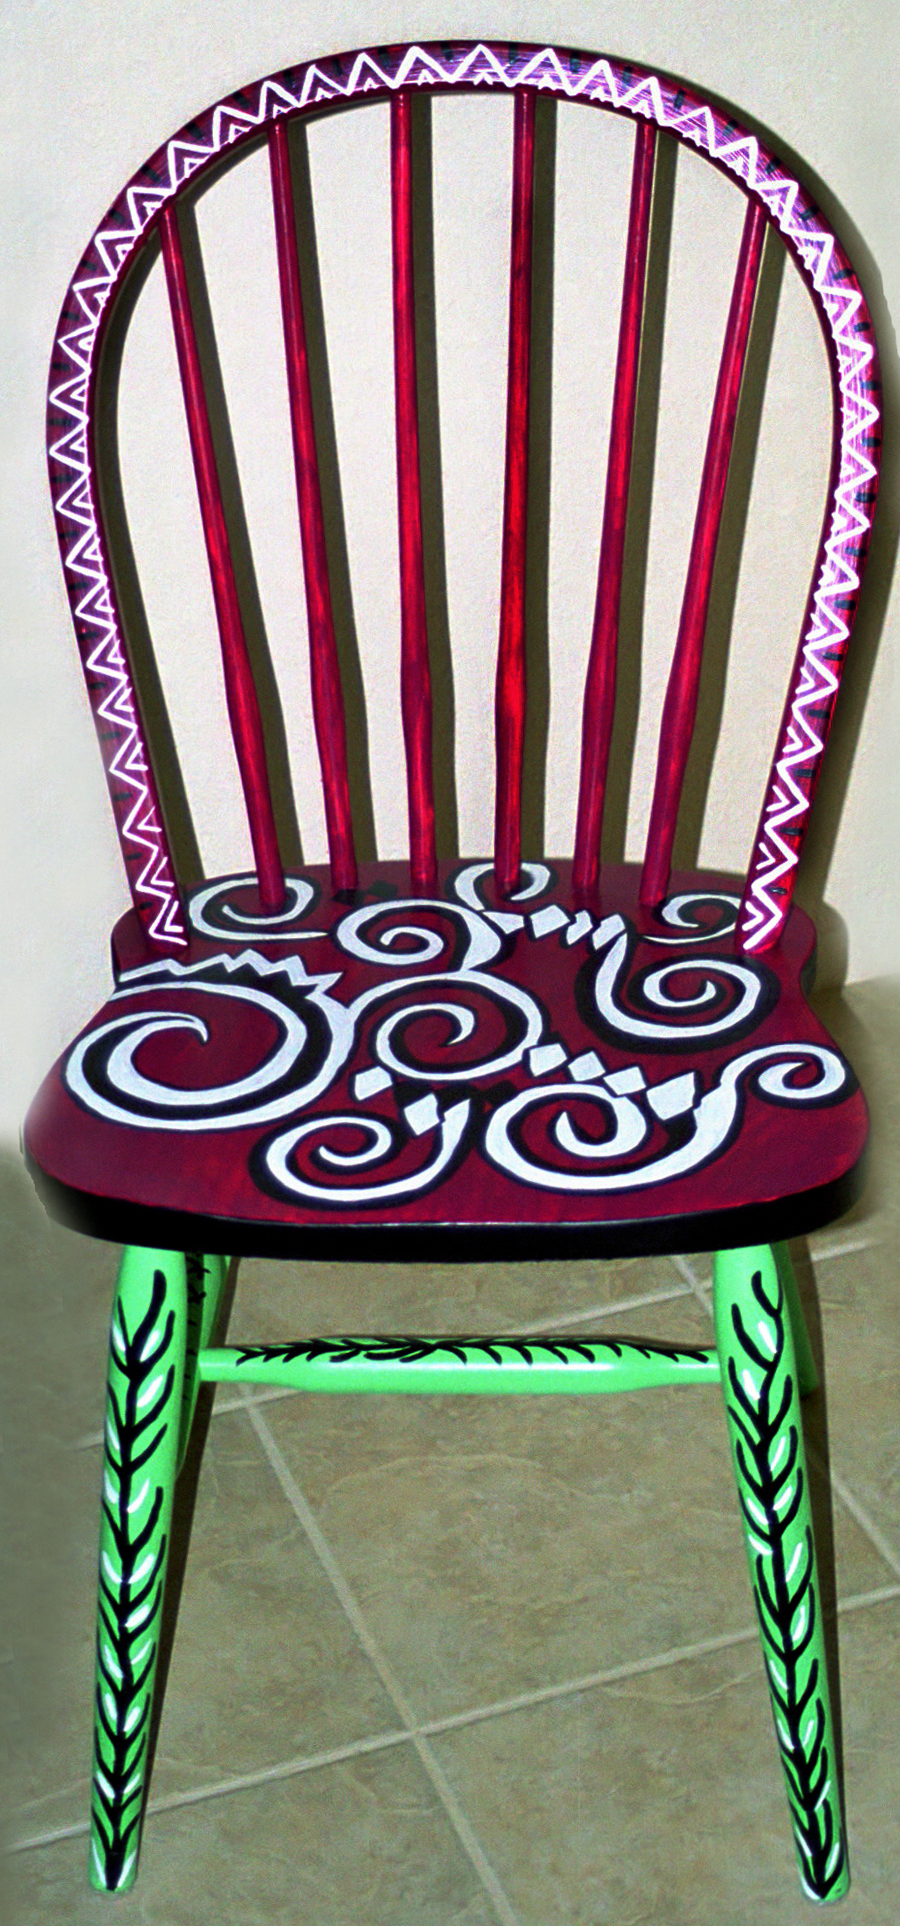 Painted Wooden Chairs painted wooden chairs - wooden chairs